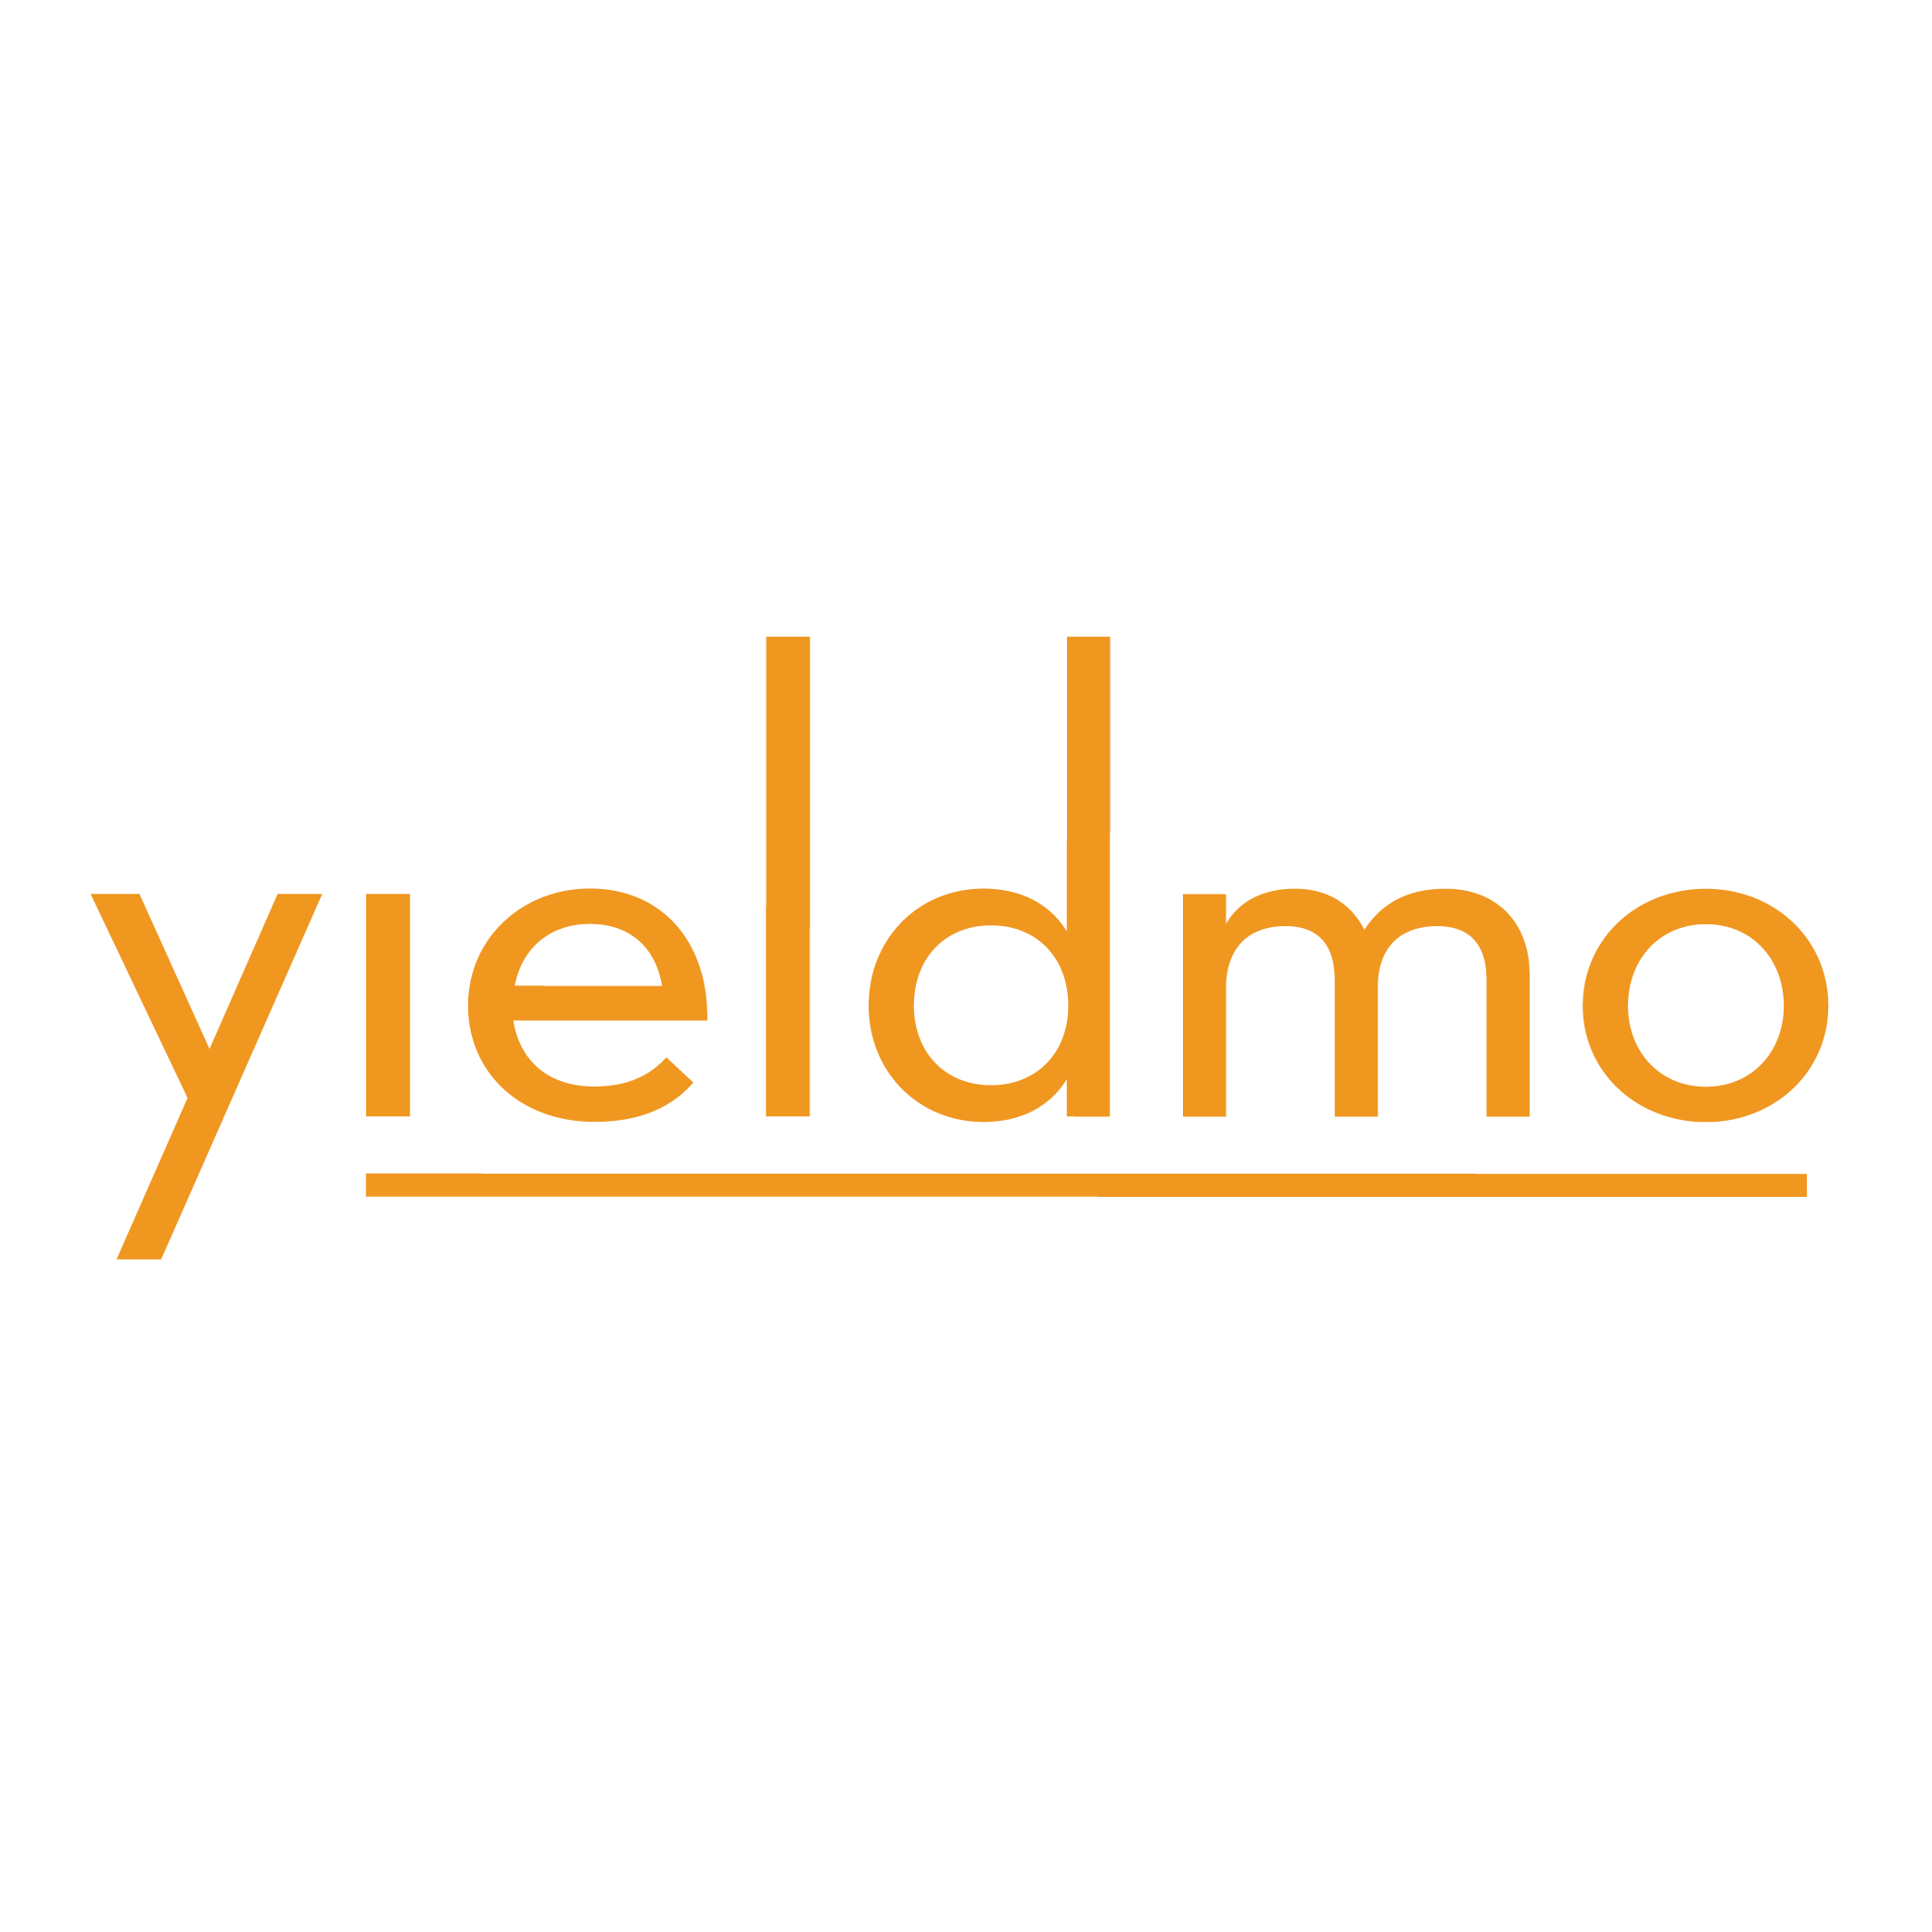 Yieldmo case study